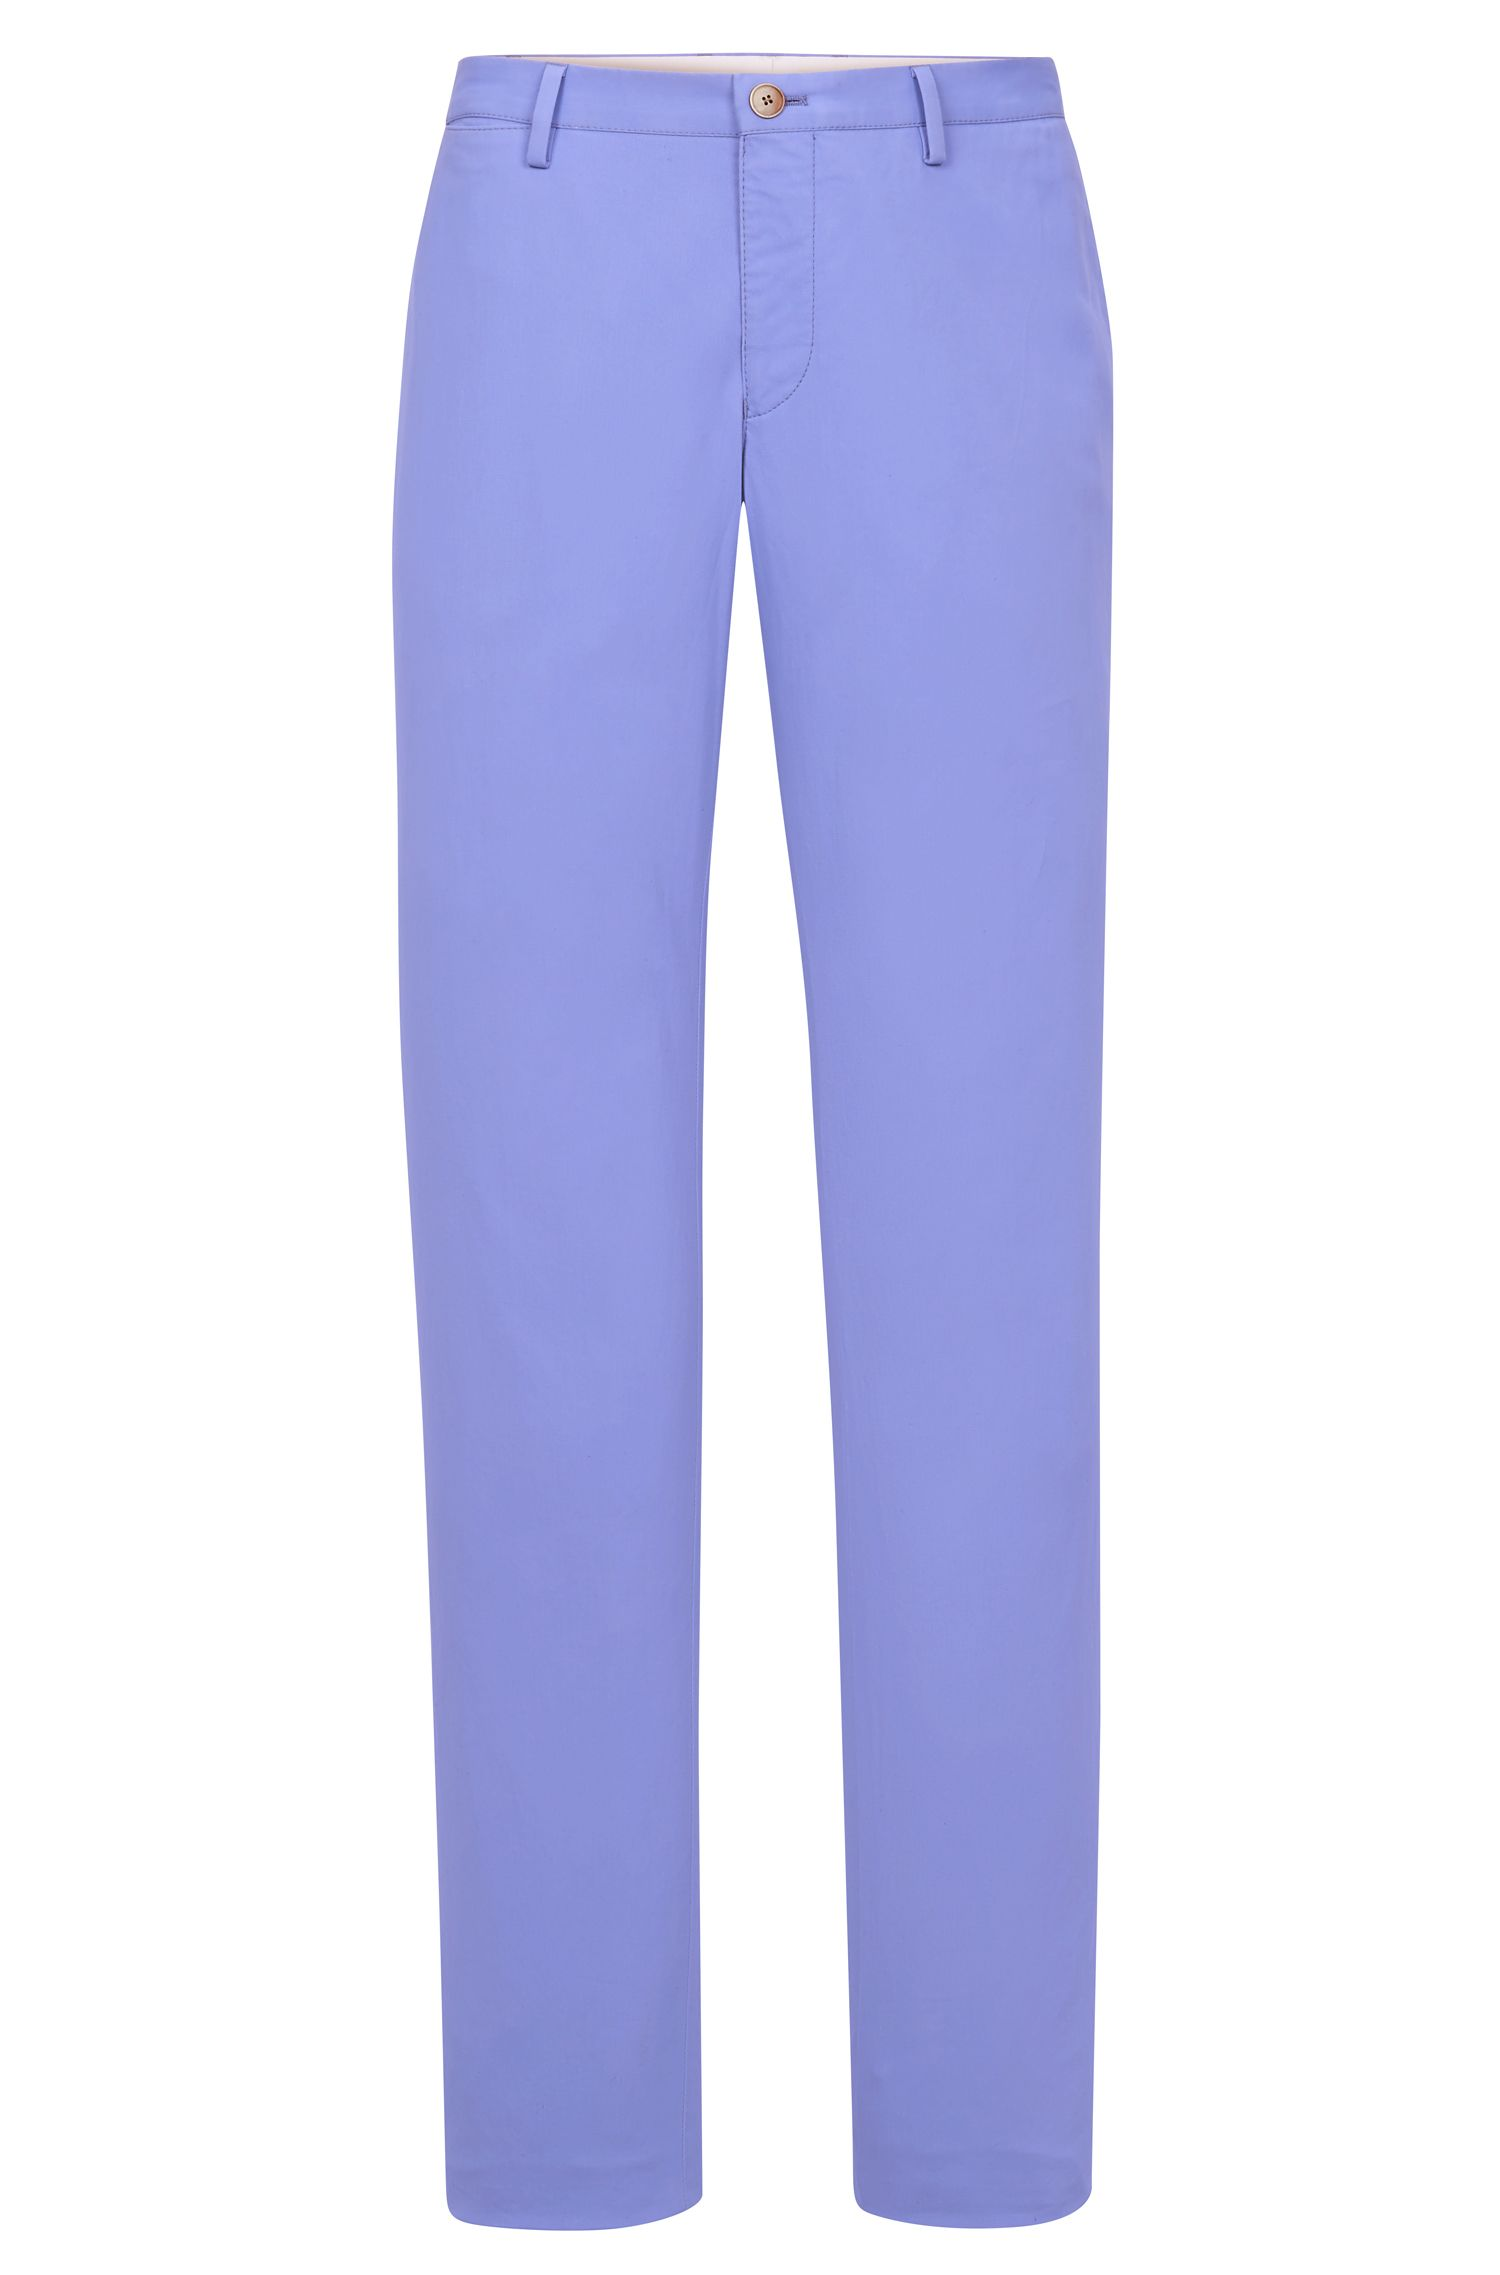 Stretch Cotton Chino Pants, Slim Fit | Stanino W